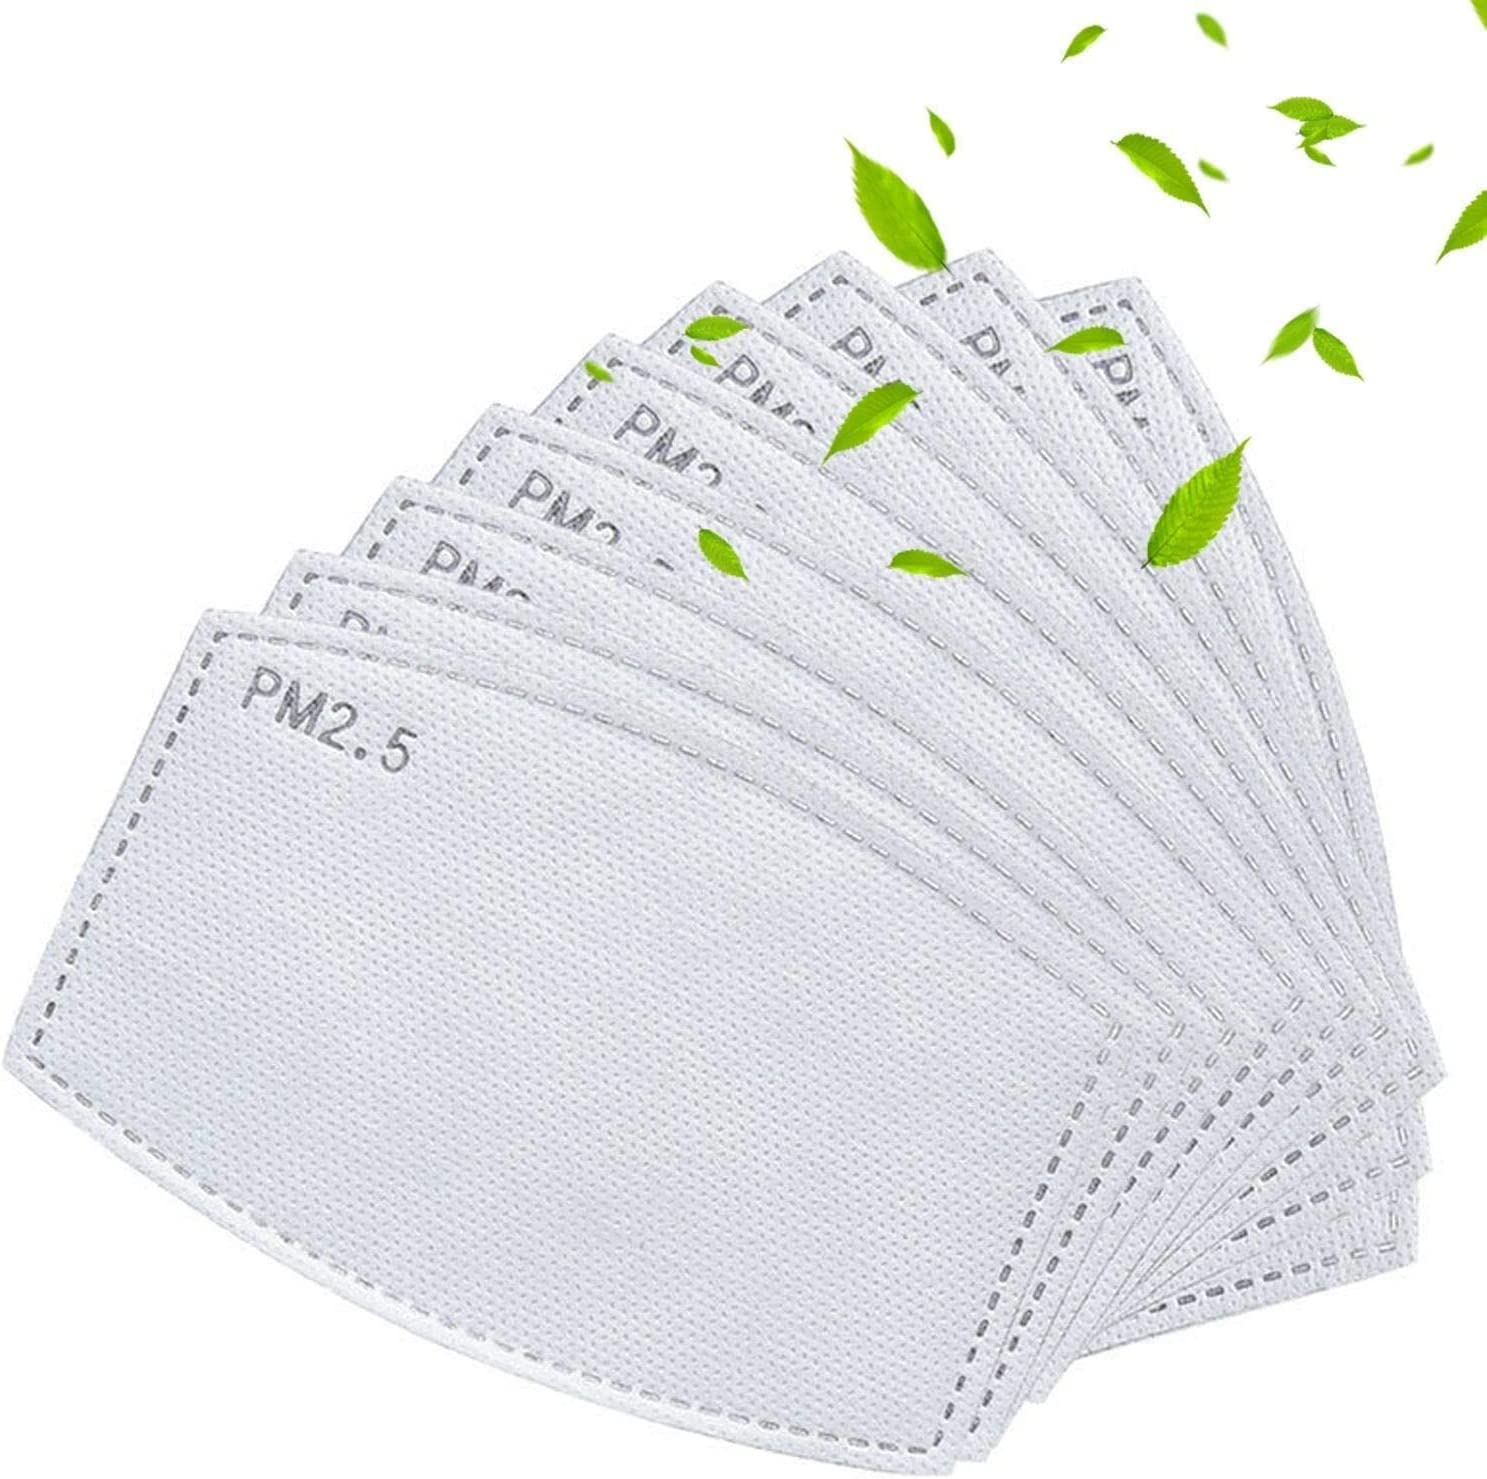 Classic 50PCS PCS Adult PM2.5 Activated Carbon Replaceab security 5 Layers Filter